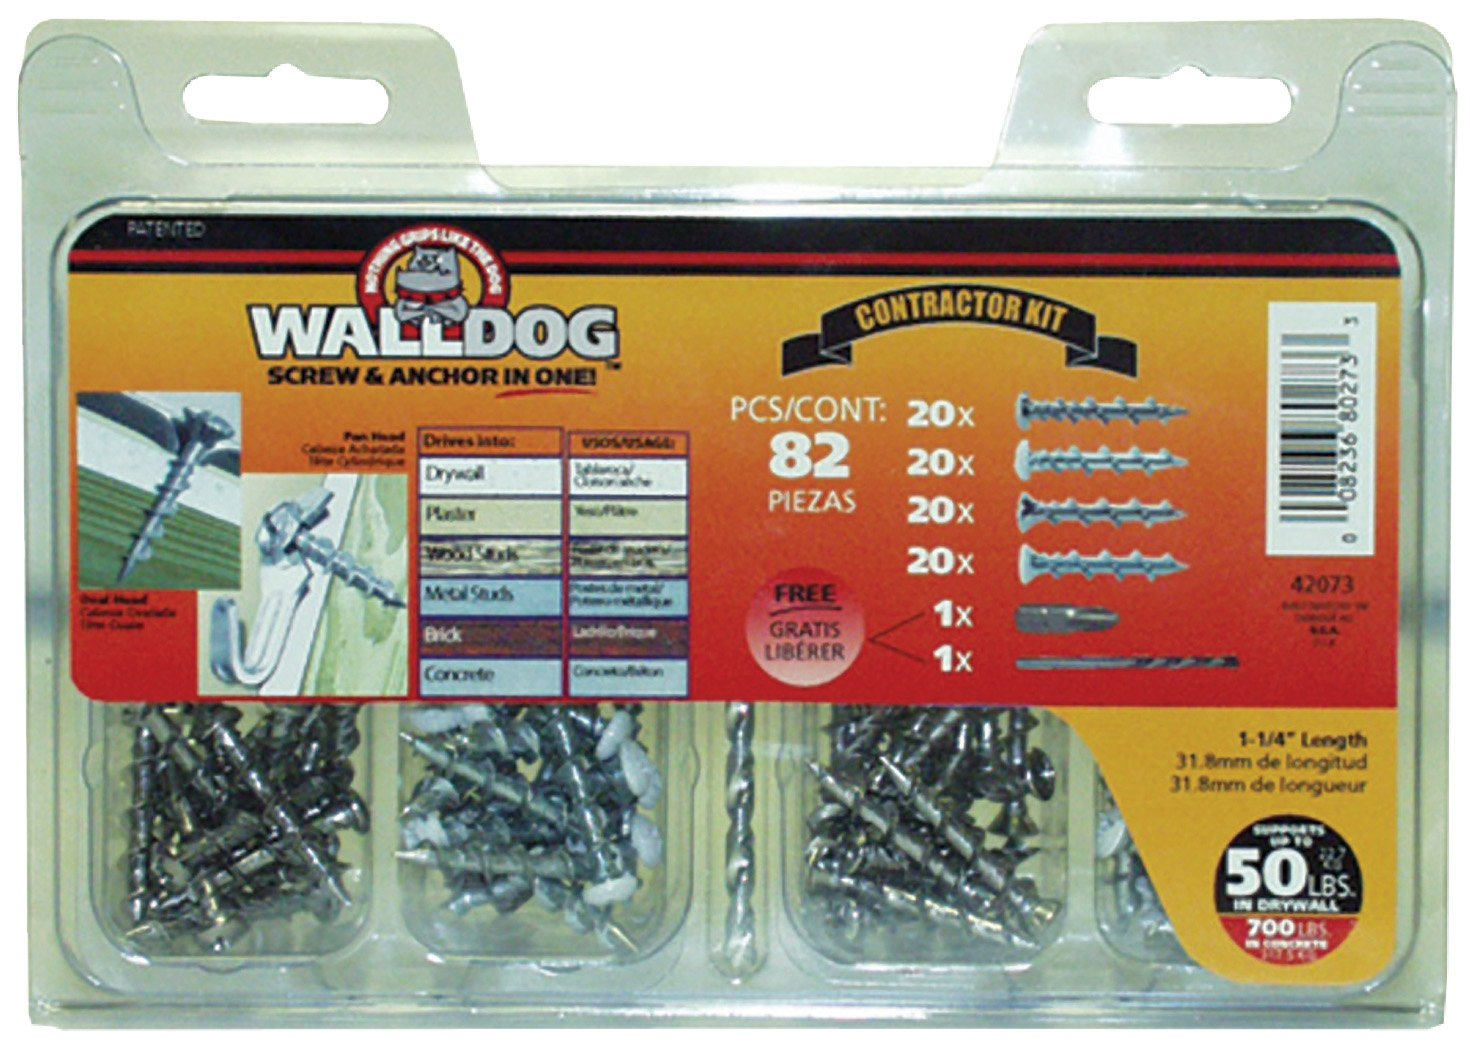 Hillman Group 42073 WALLDOG Screw & Anchor in One! Contractor Kit Pack of 1 82 Pieces